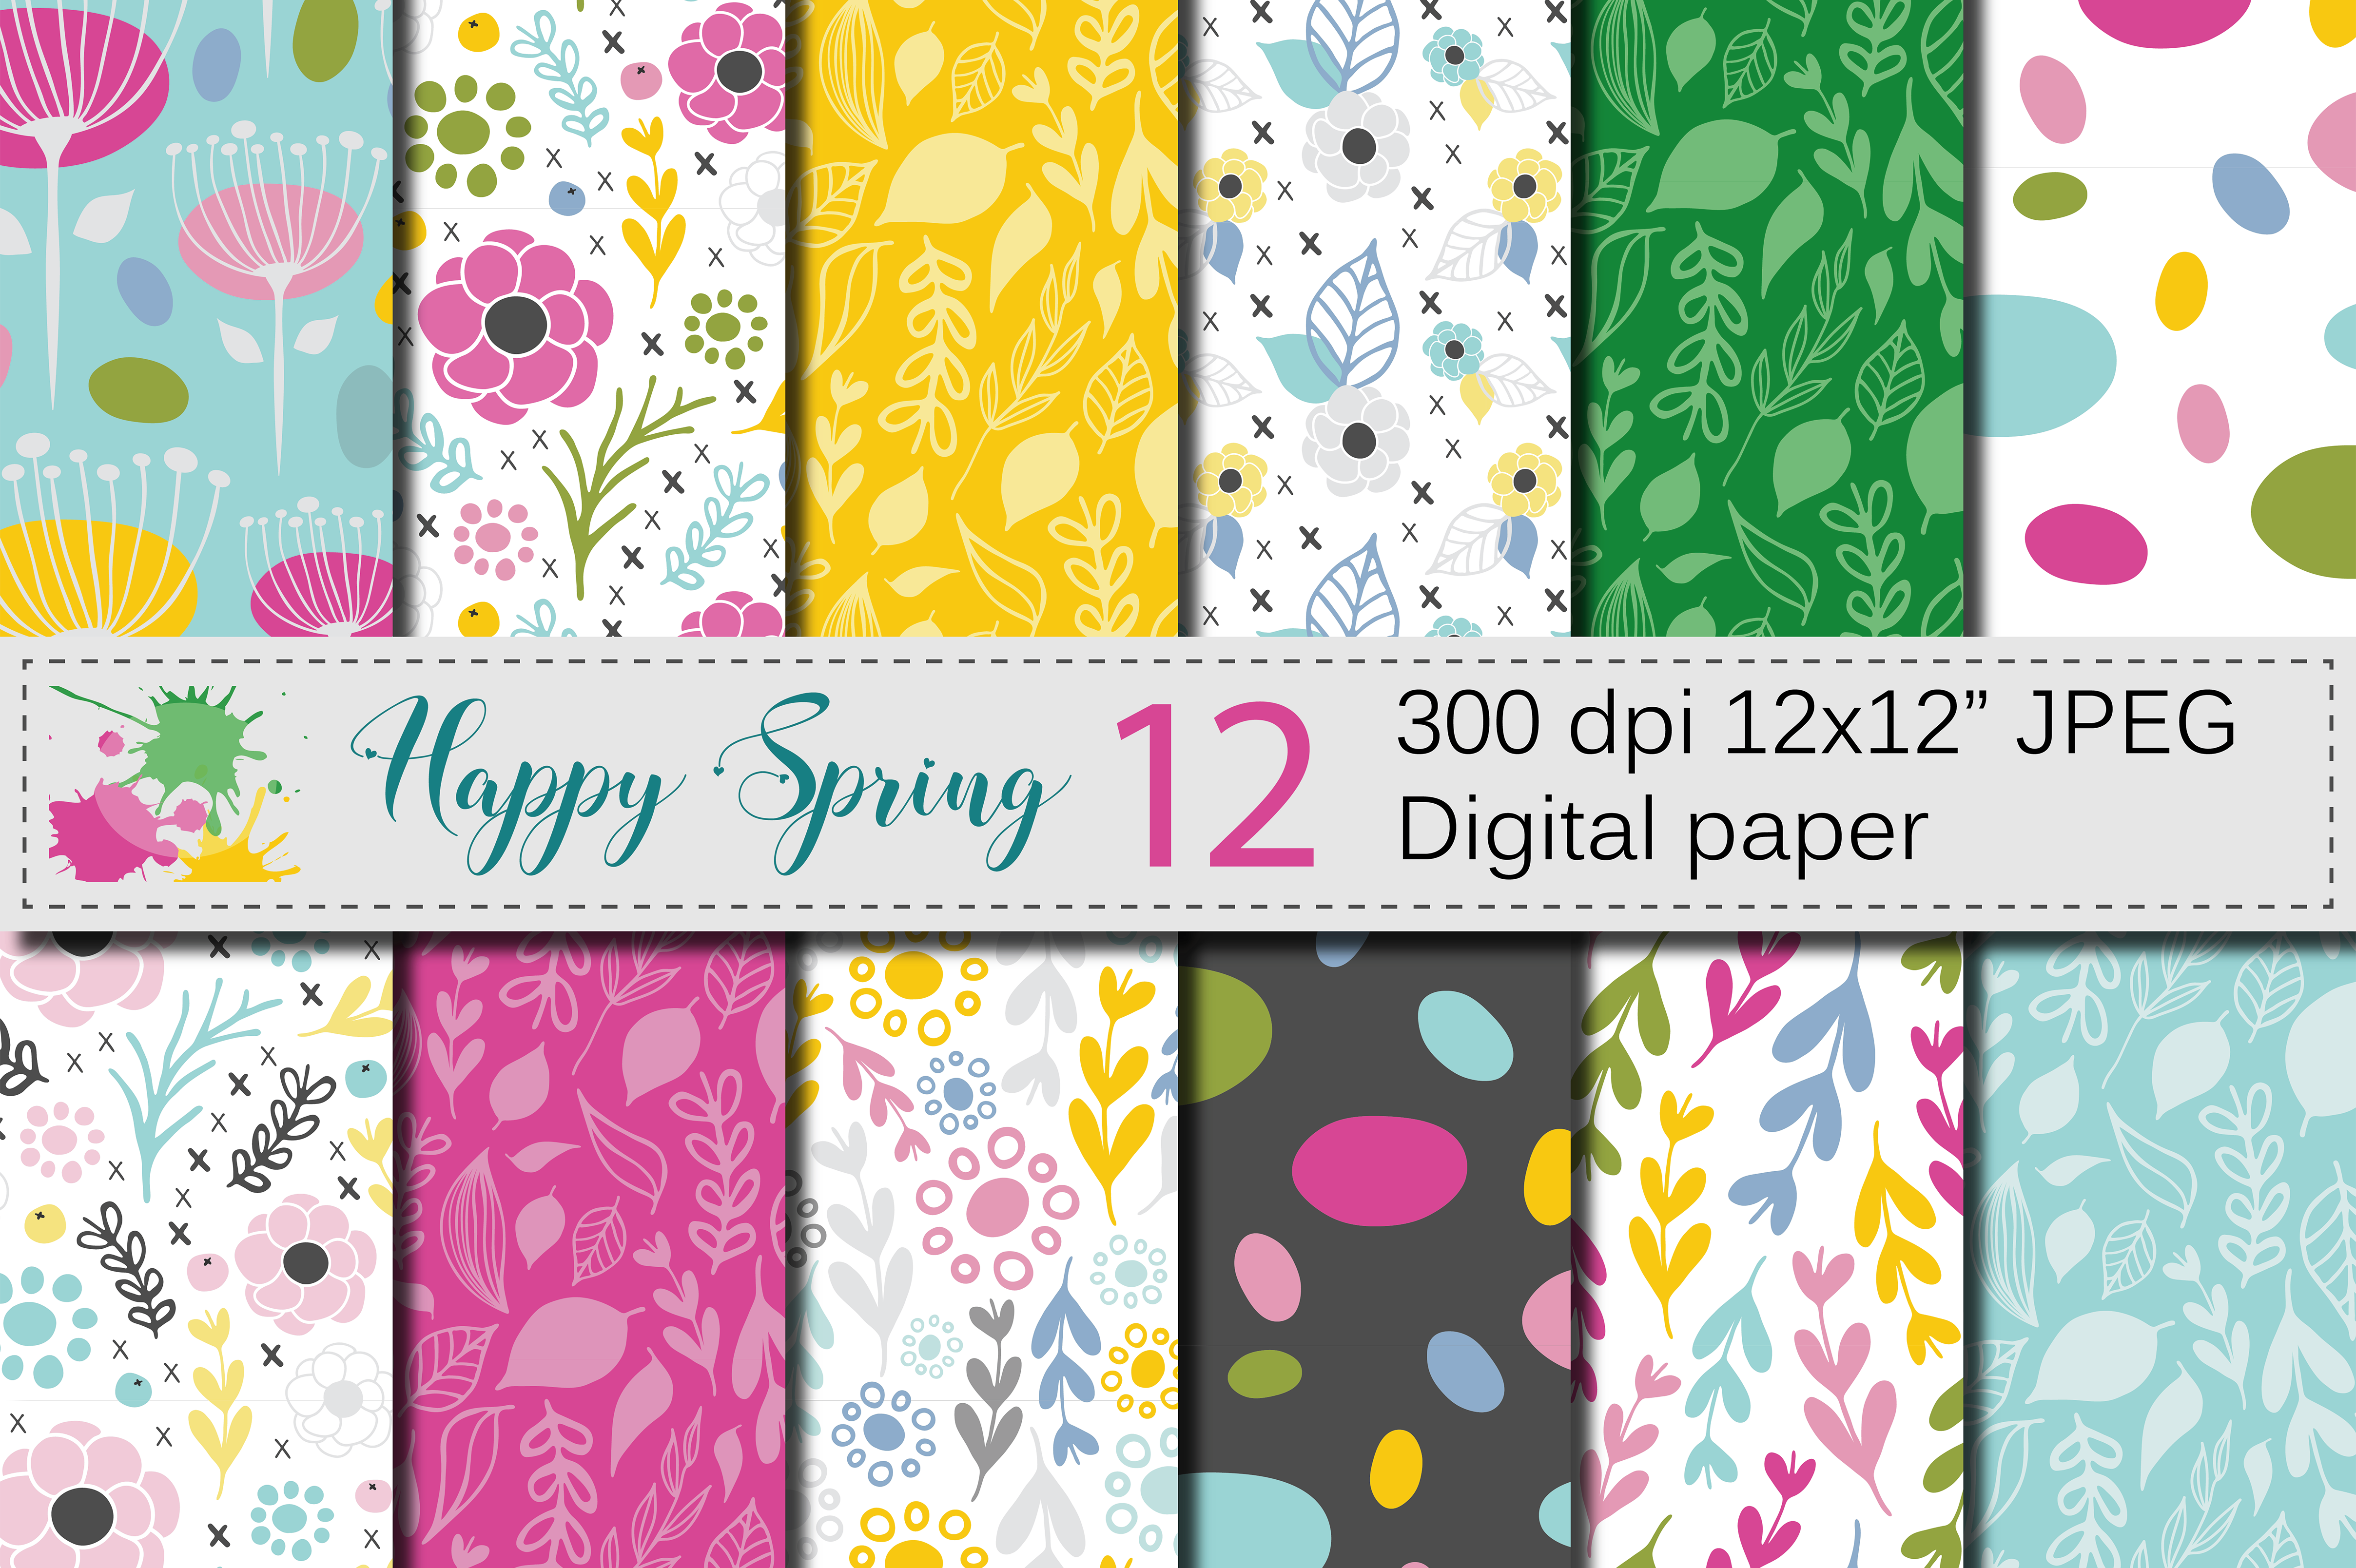 Seamless Bright Spring Digital Paper Hand Drawn Flowers Leaves